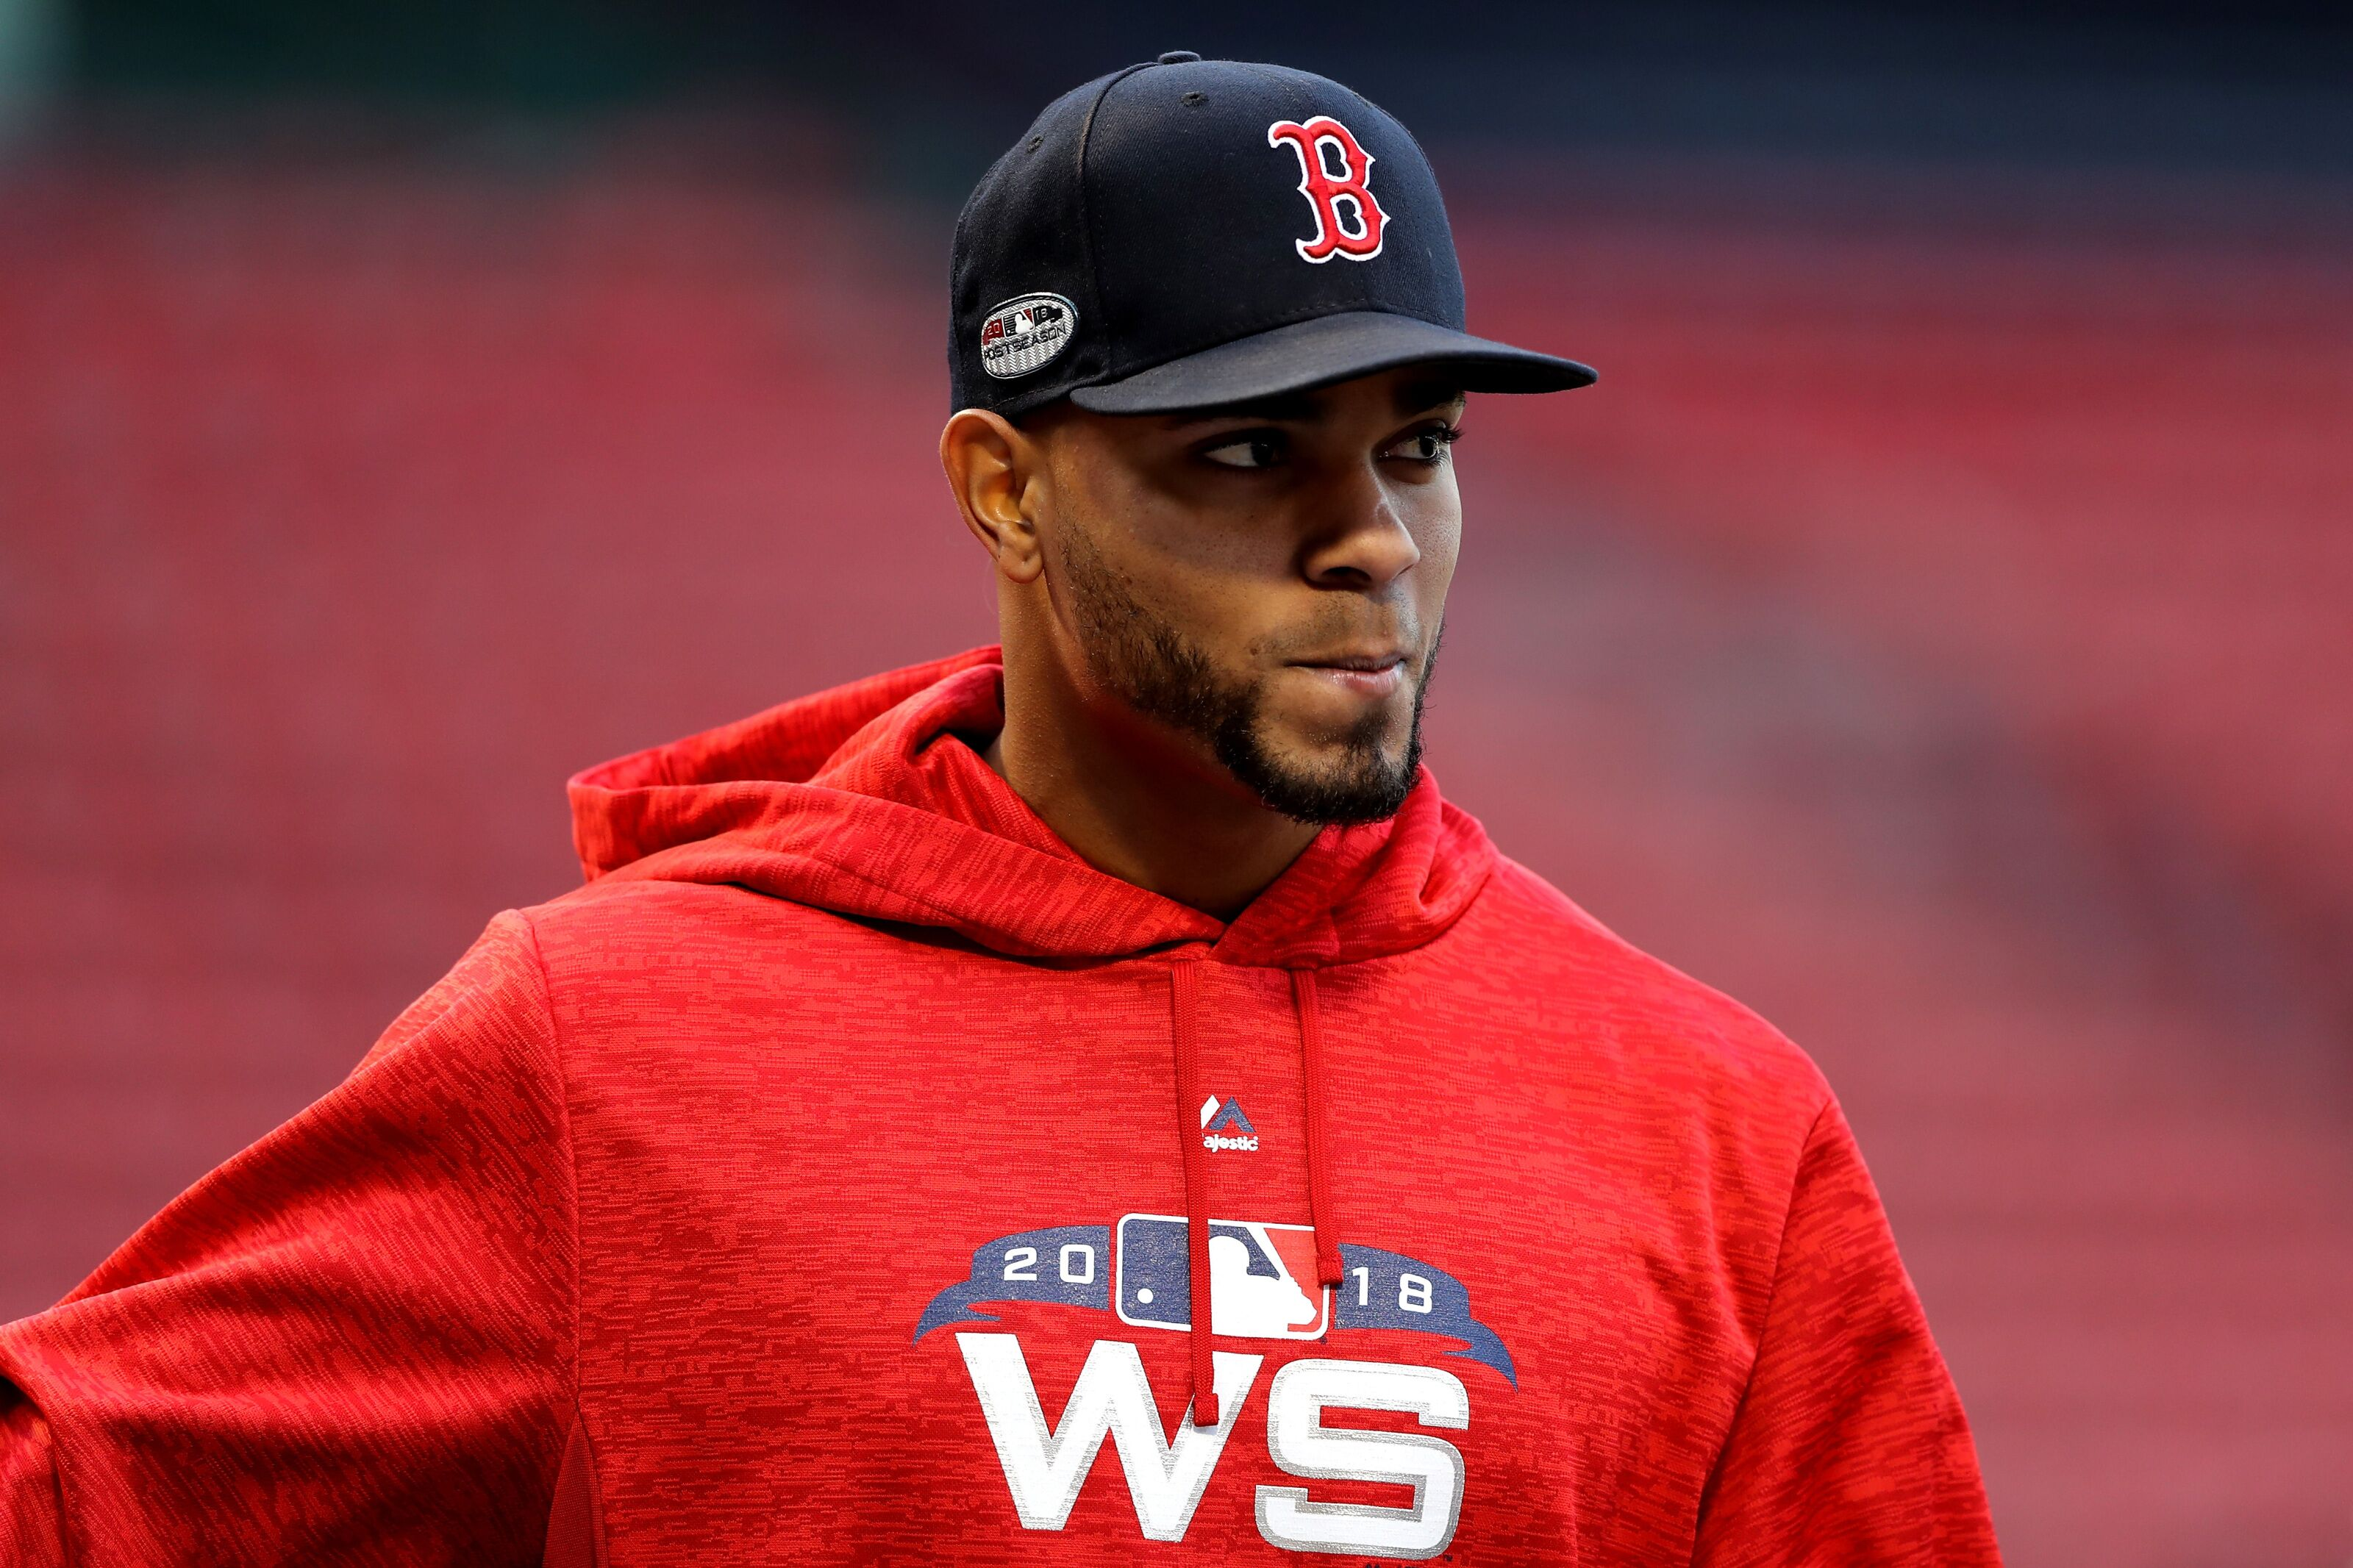 Red Sox Rumors: Bogaerts was core player in extension talks